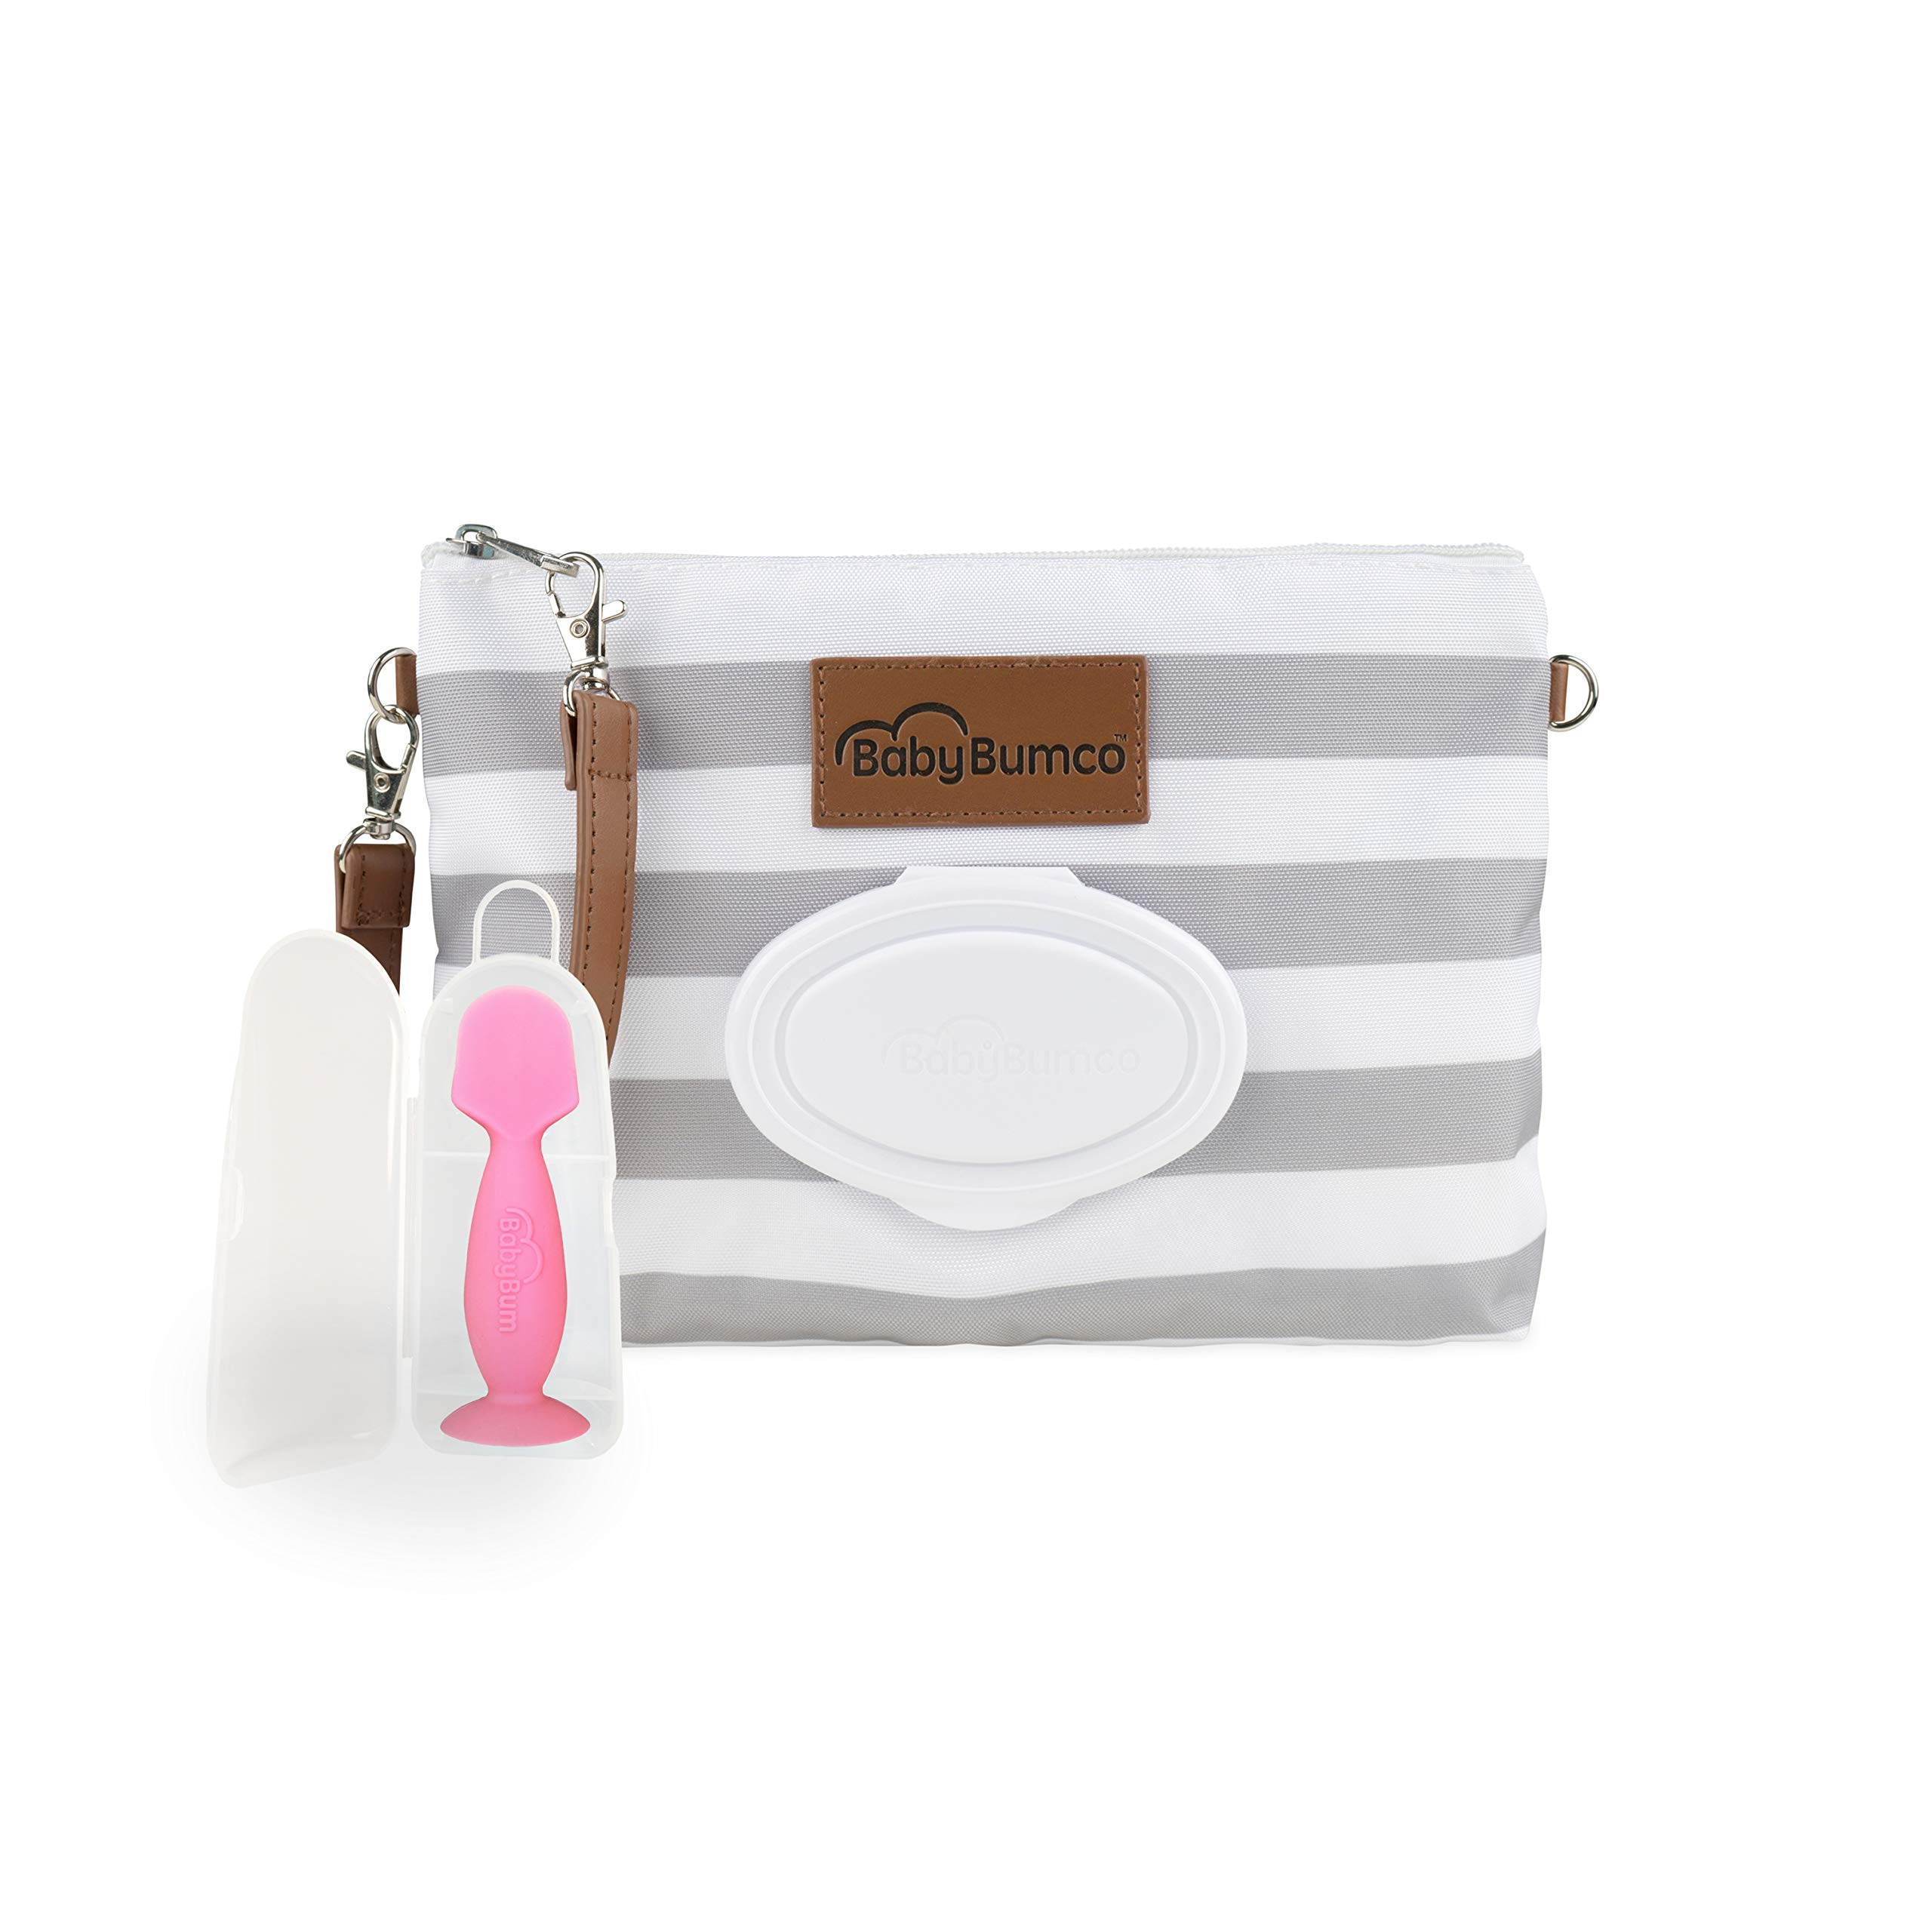 Diaper Clutch Bag and Mini Rash Cream Applicator with Travel Case, Soft Flexible Silicone - Water Resistant; Lightweight; Refillable Wipes Dispenser; Portable Changing Kit (Gray + Pink)